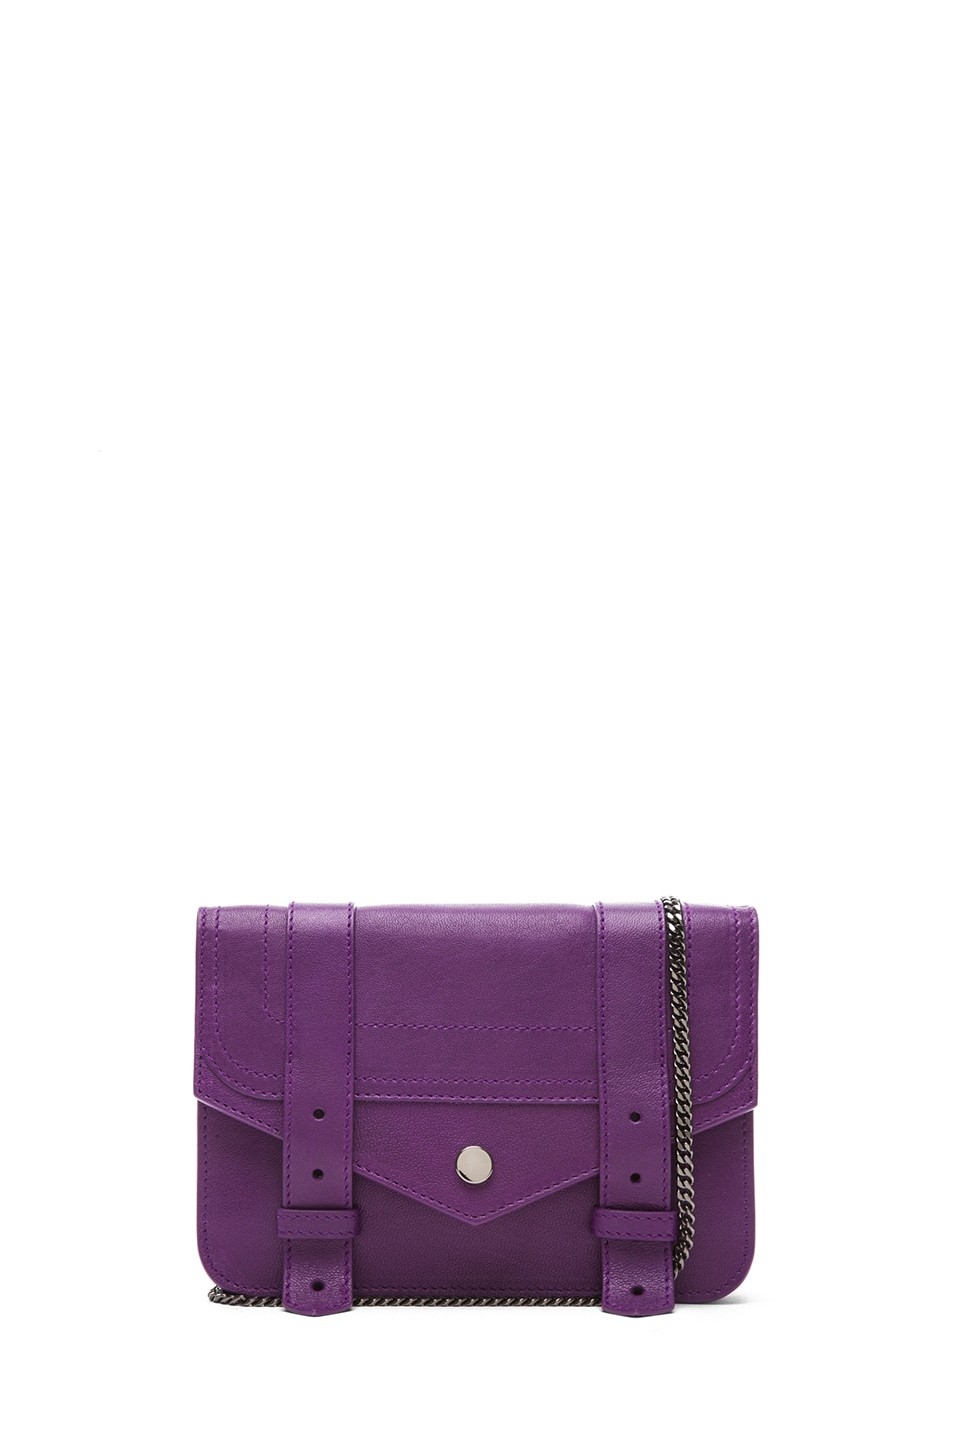 Image 1 of Proenza Schouler Large PS1 Chain Wallet in Veruca Salt